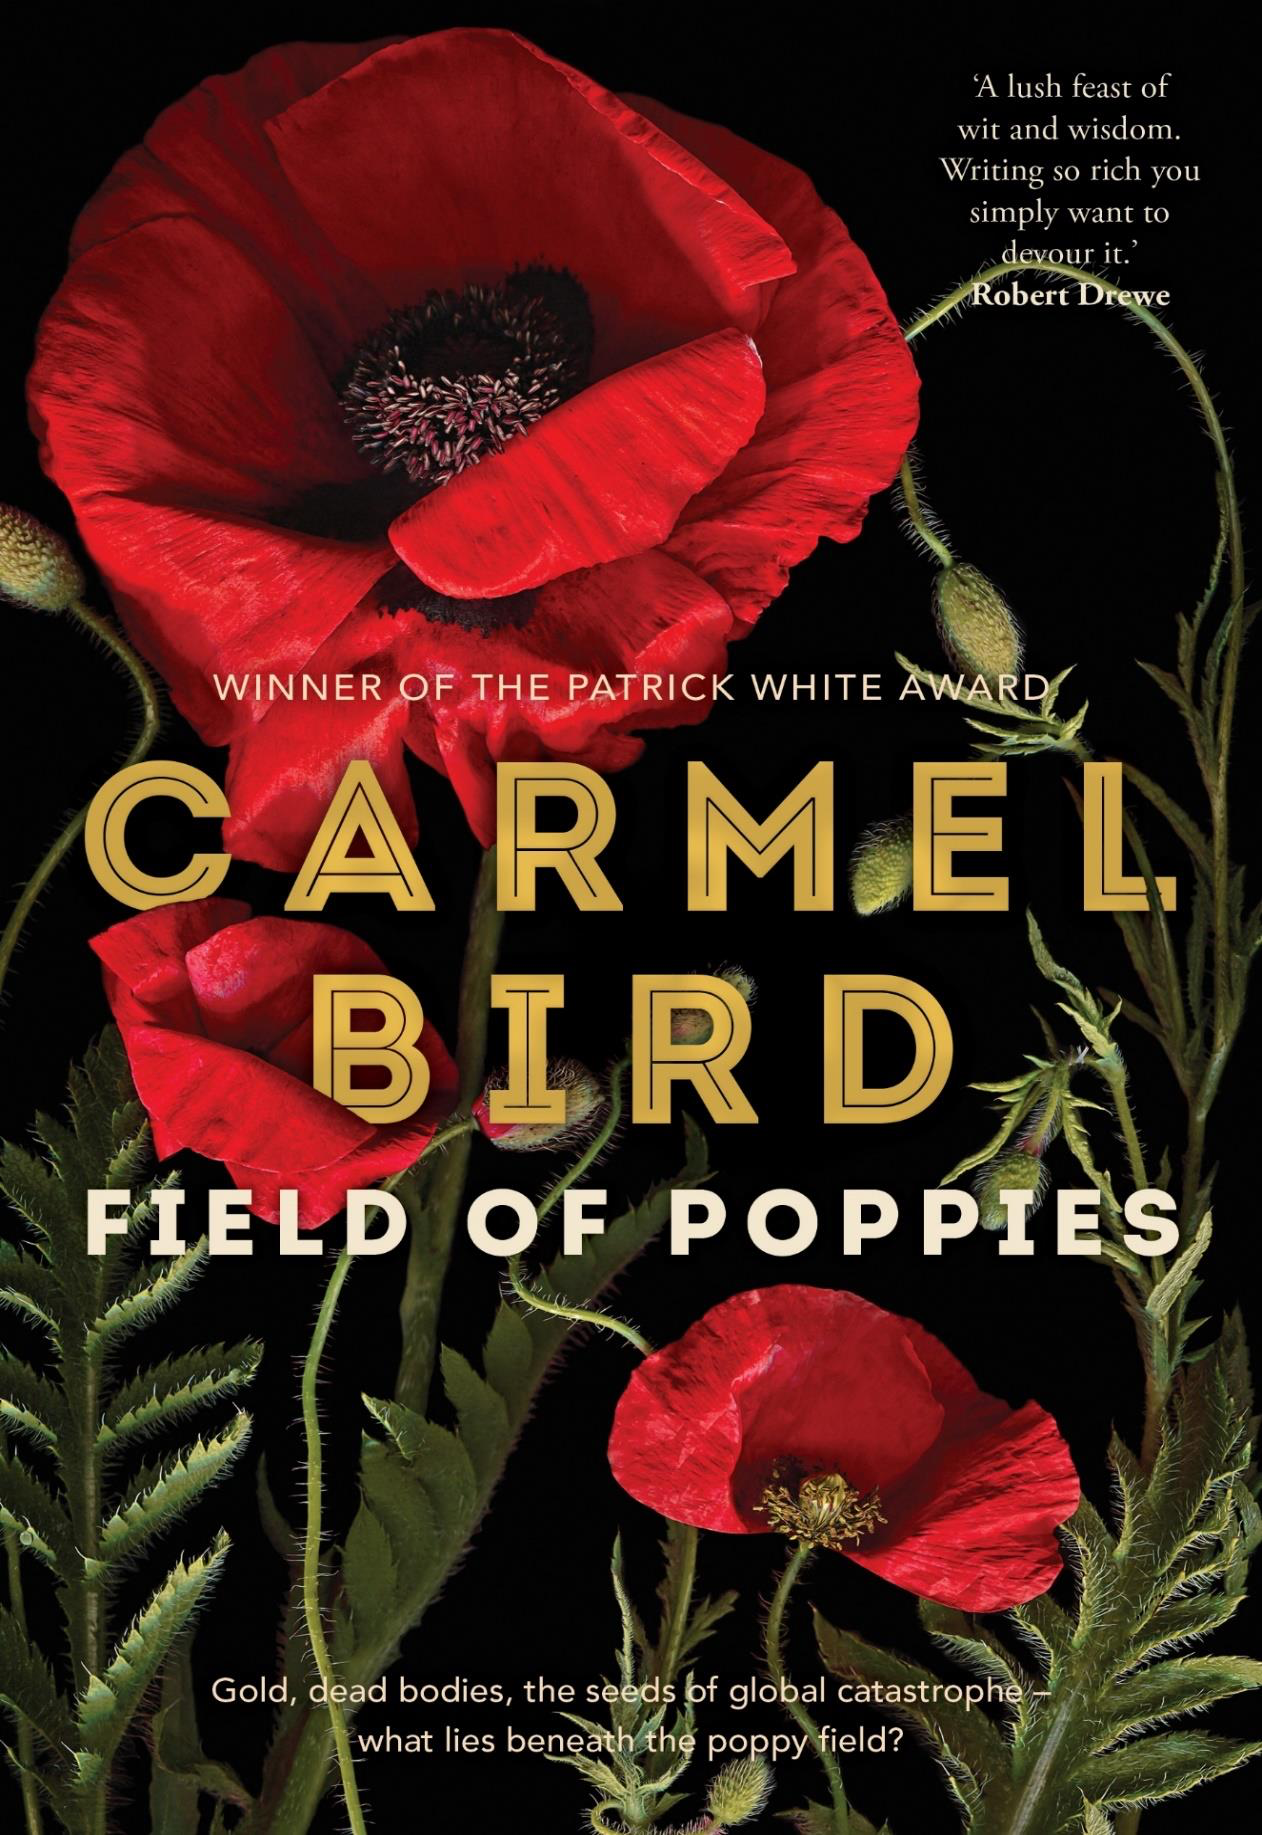 Image from ReadingNotes-FieldOfPoppies-CBird-v2 (2), page 1.png